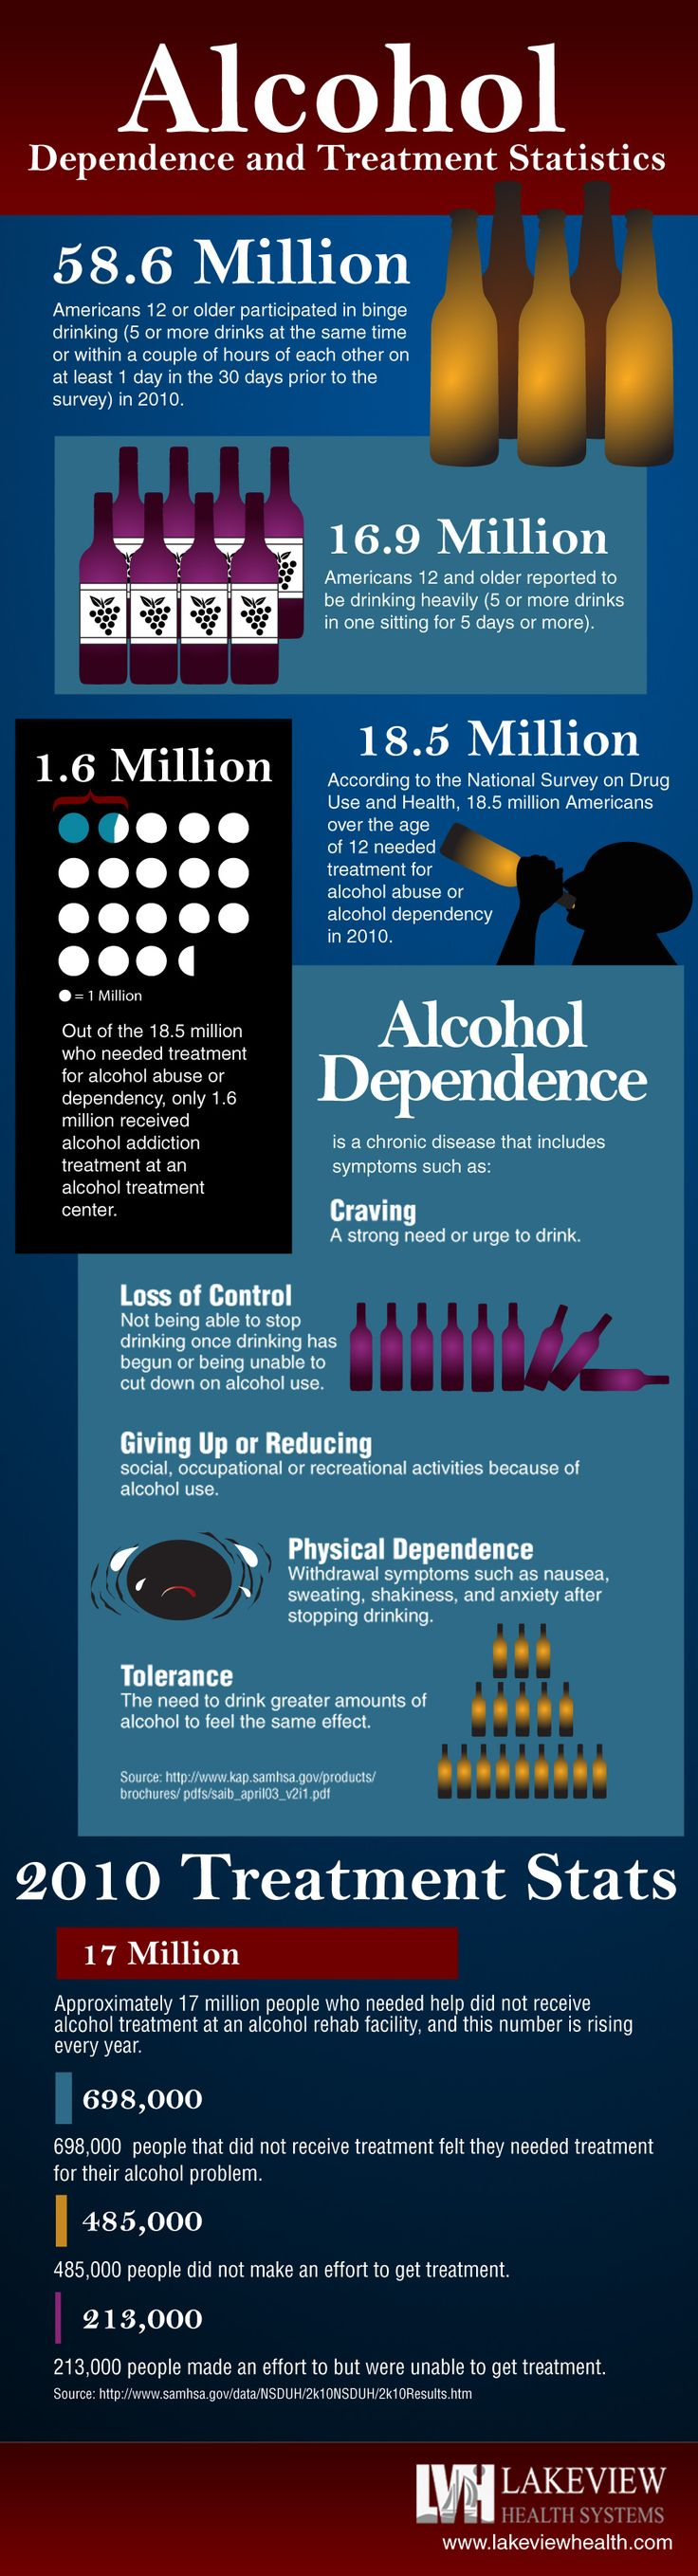 Alcohol dependence has severe consequences for the body. Millions of Americans struggle with the unpleasant and even fatal effects of alcohol. http://www.lakeviewhealth.com/alcohol-dependence-and-treatment-statistics-infographic.php# #alcohol